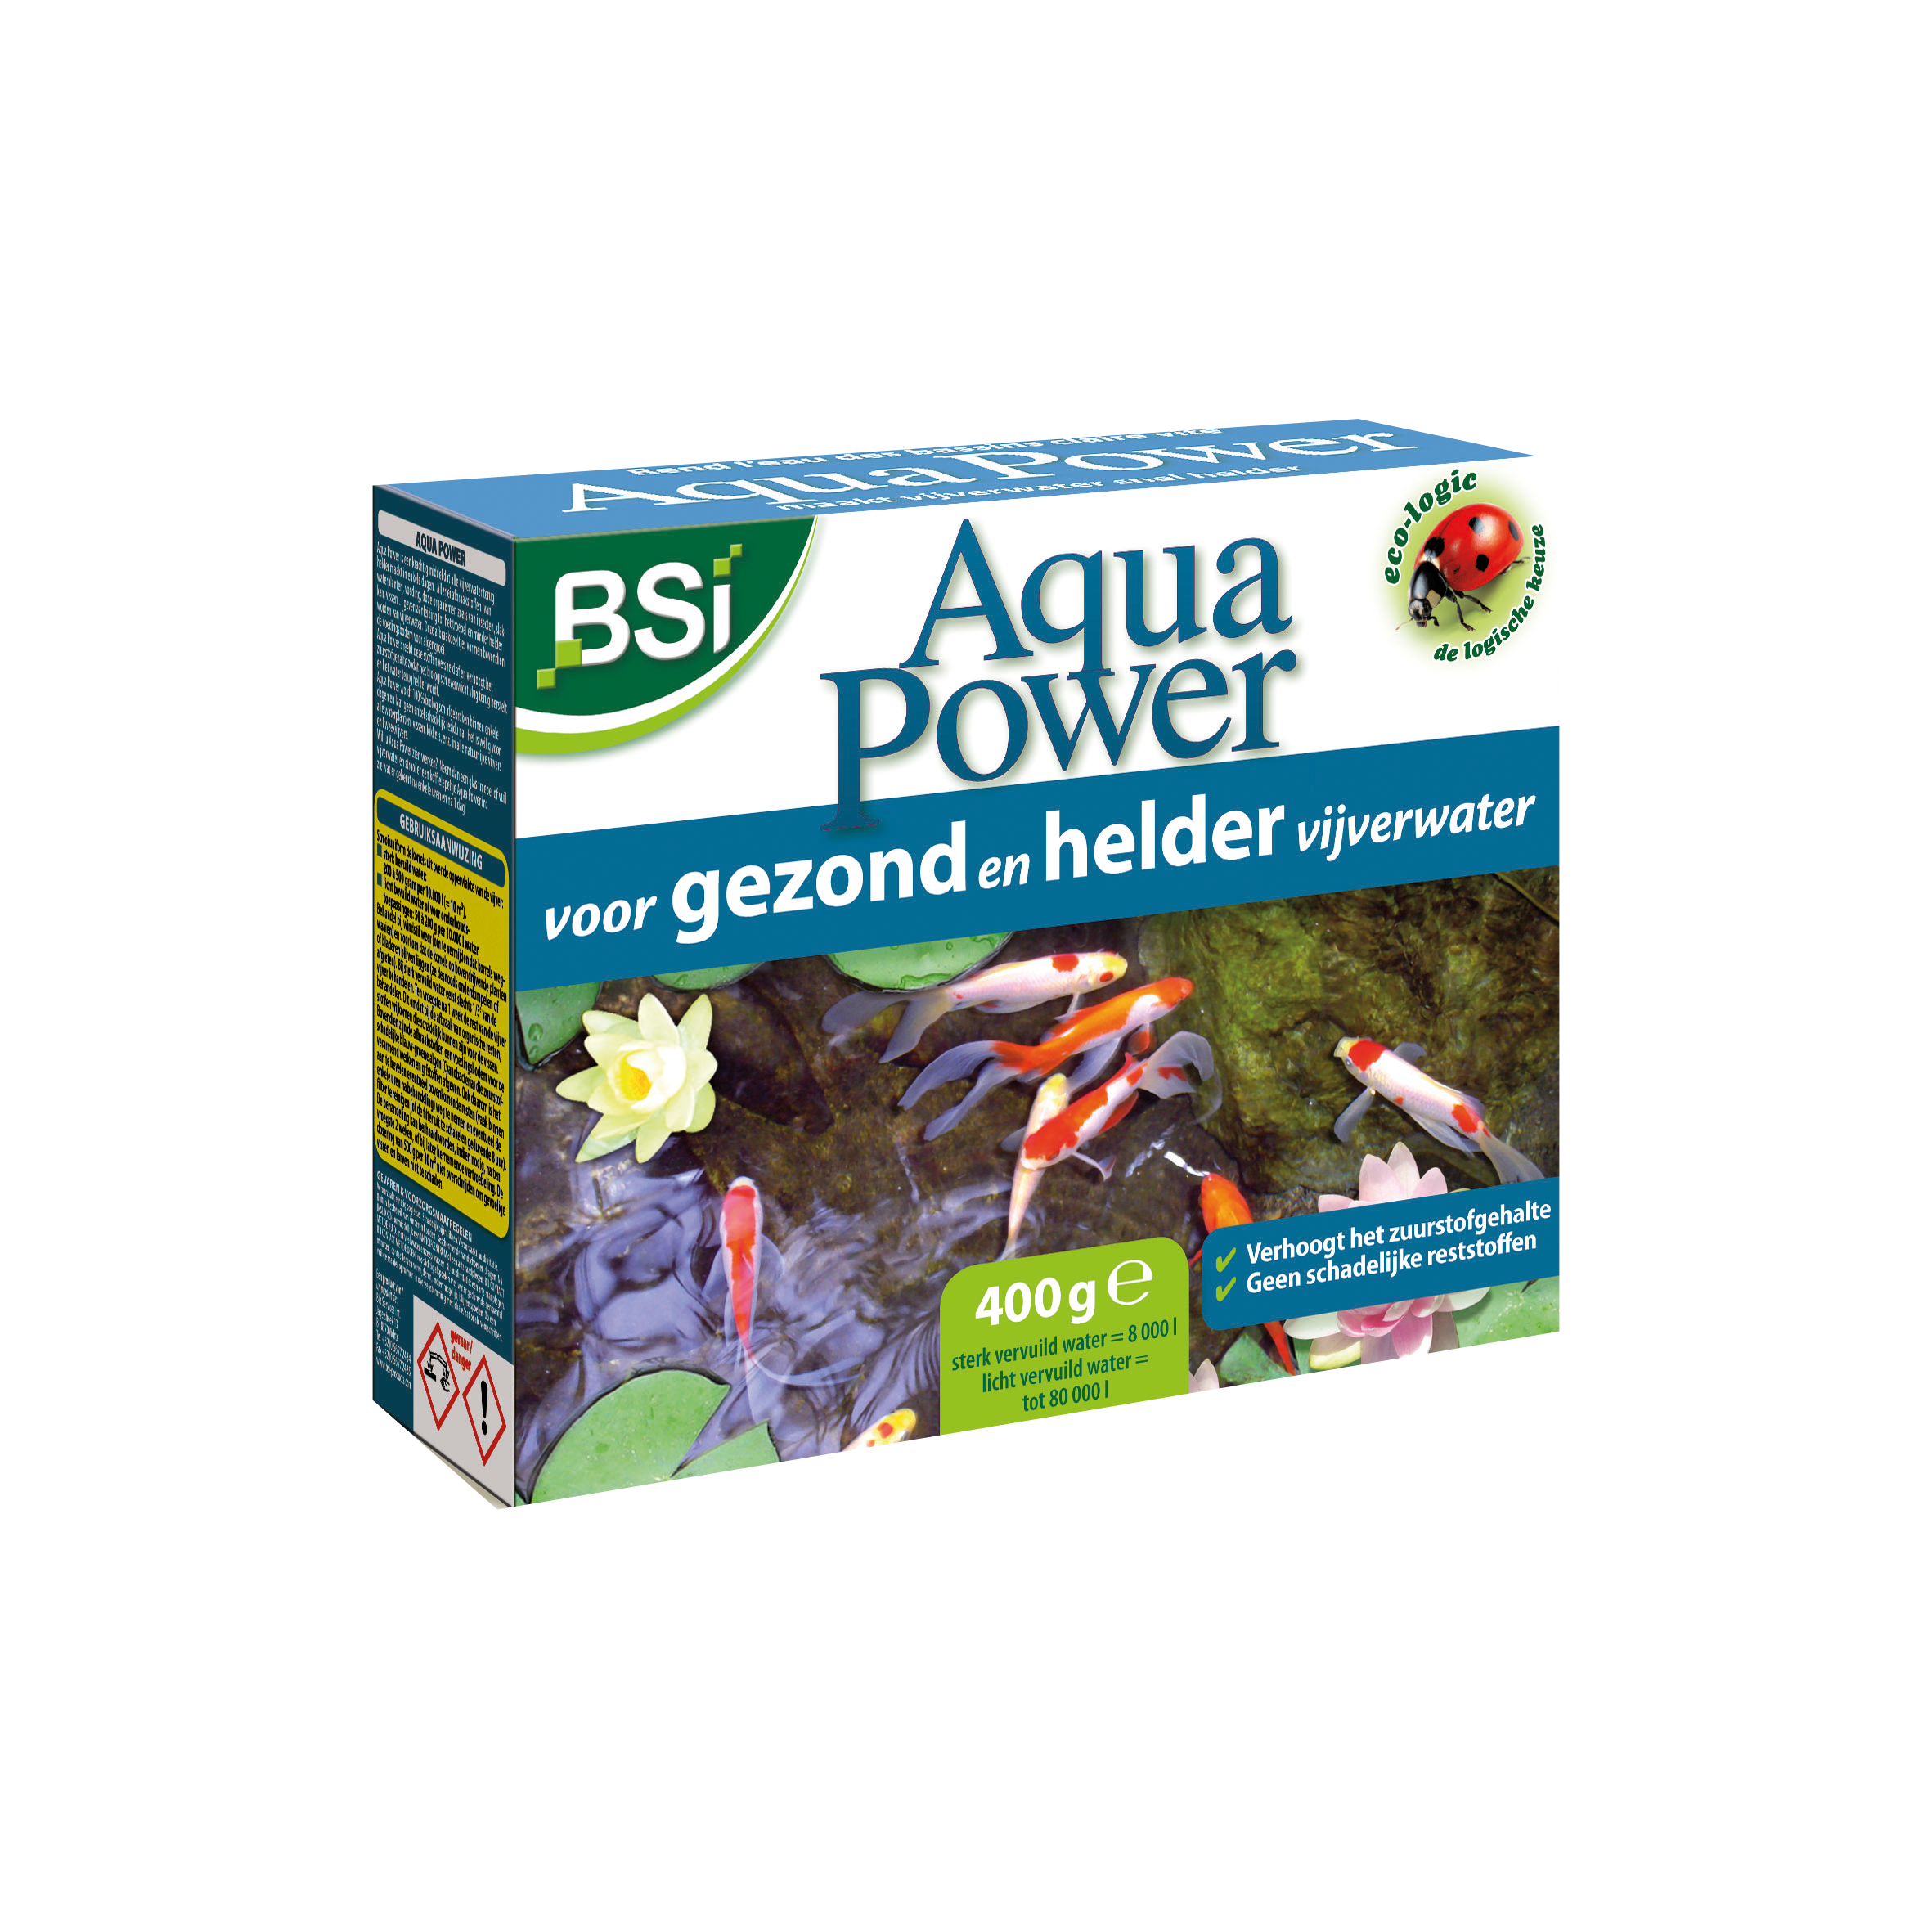 Aqua power 400 g image